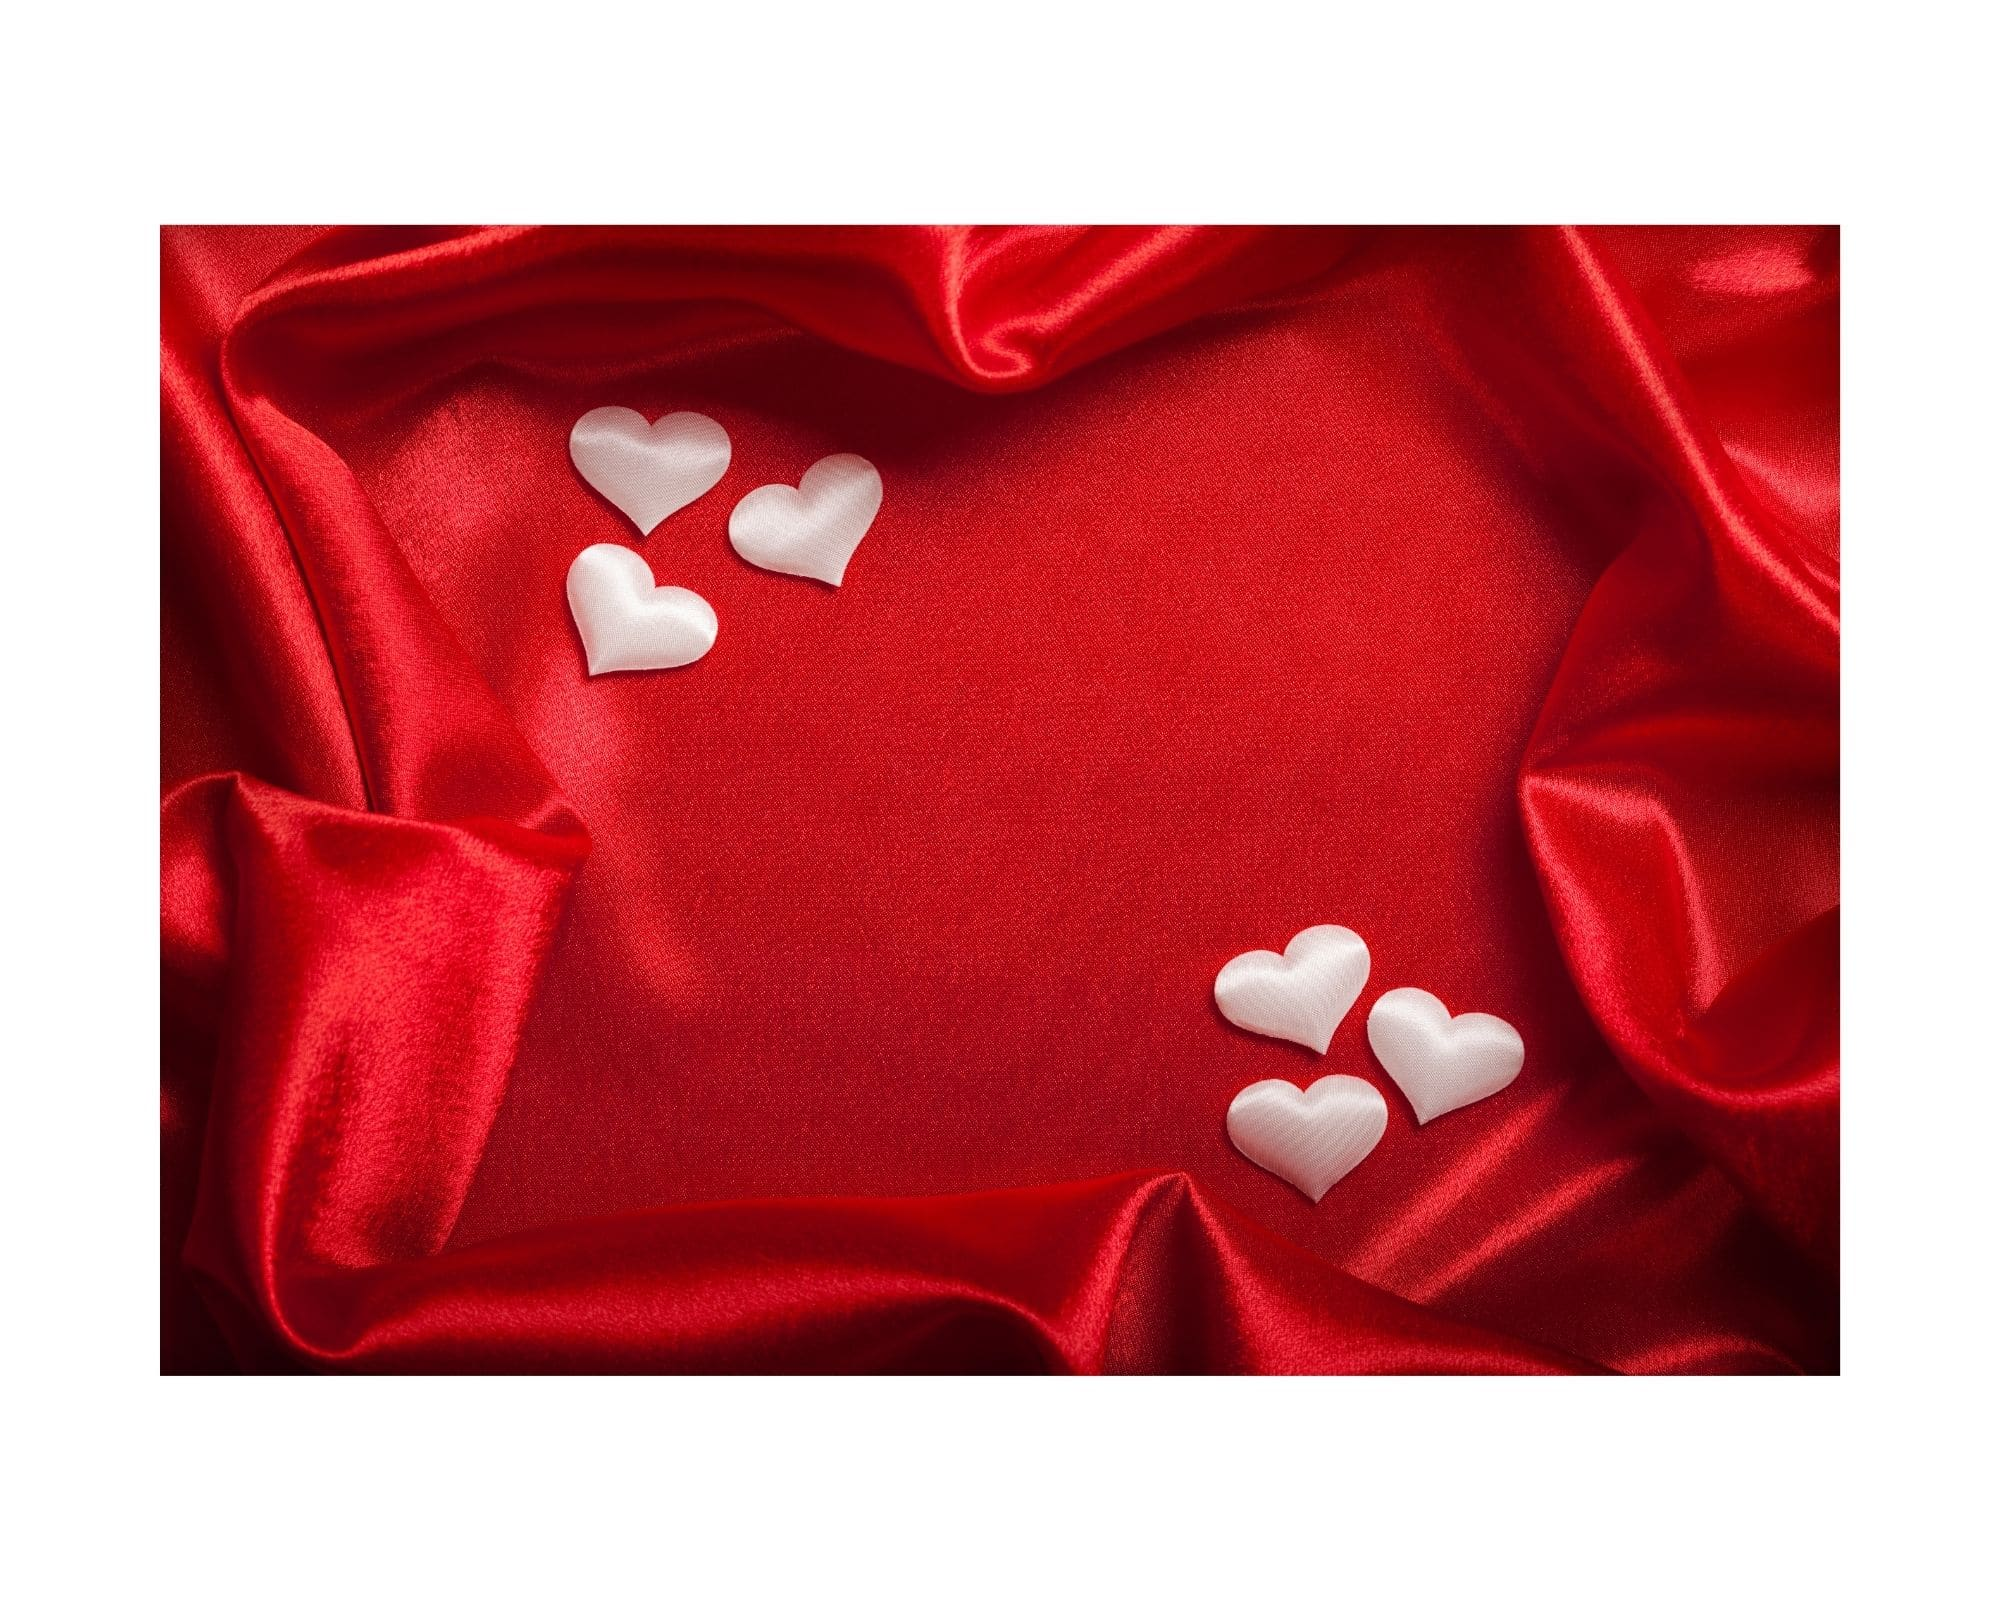 red cloth with white hearts on it